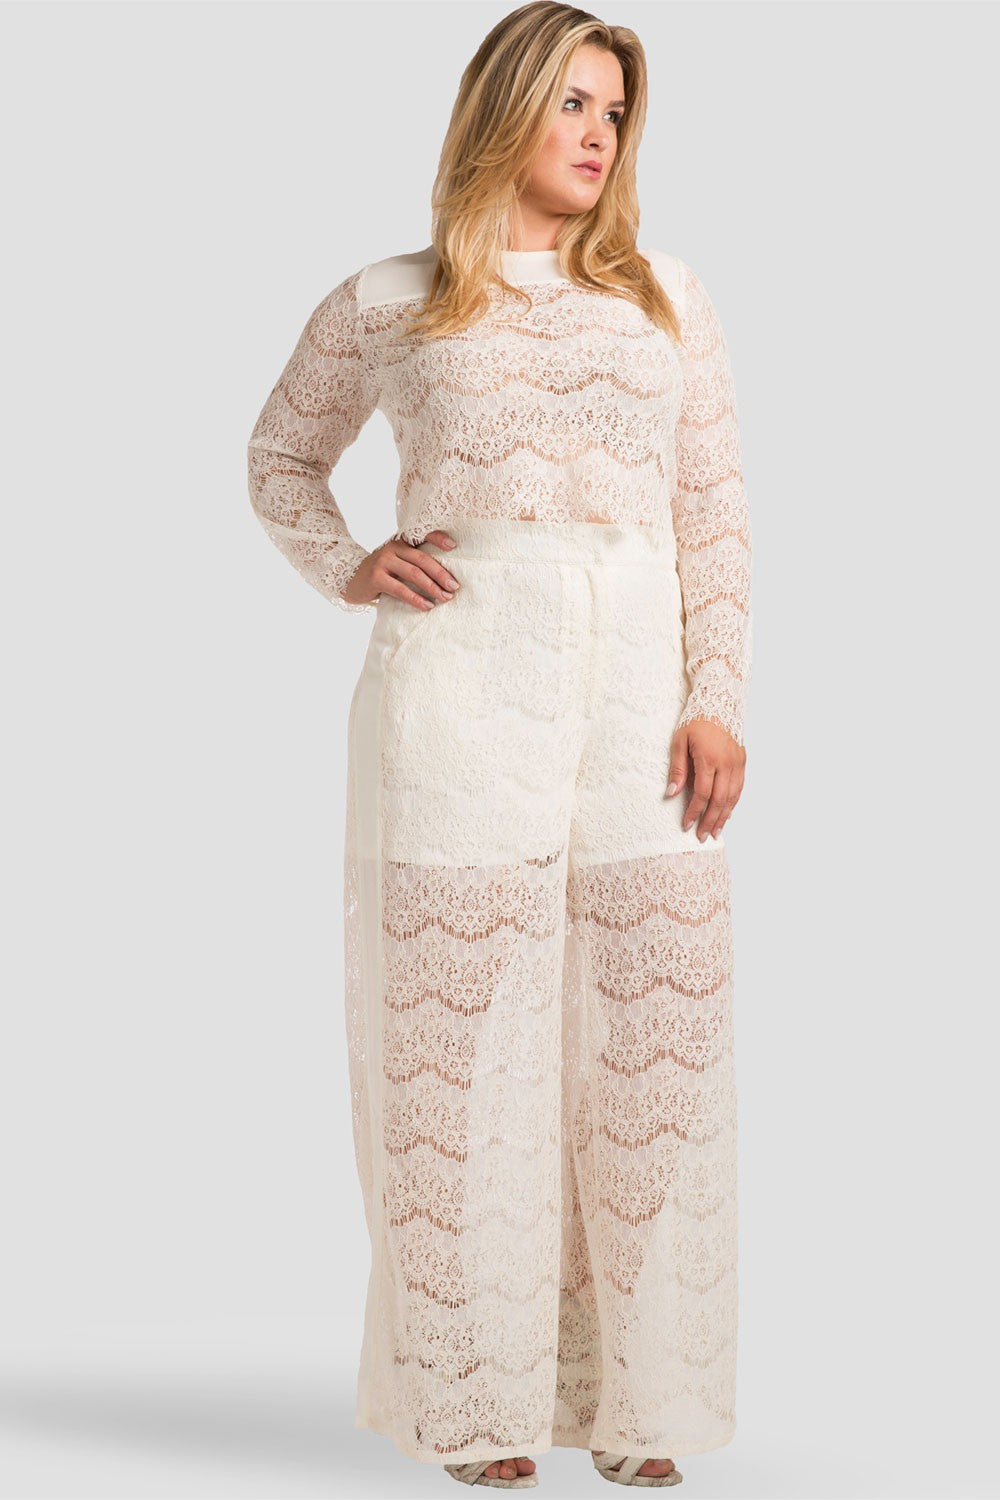 Plus Size April Ivory Spring Peek-A-Boo Lace Palazzo Pants